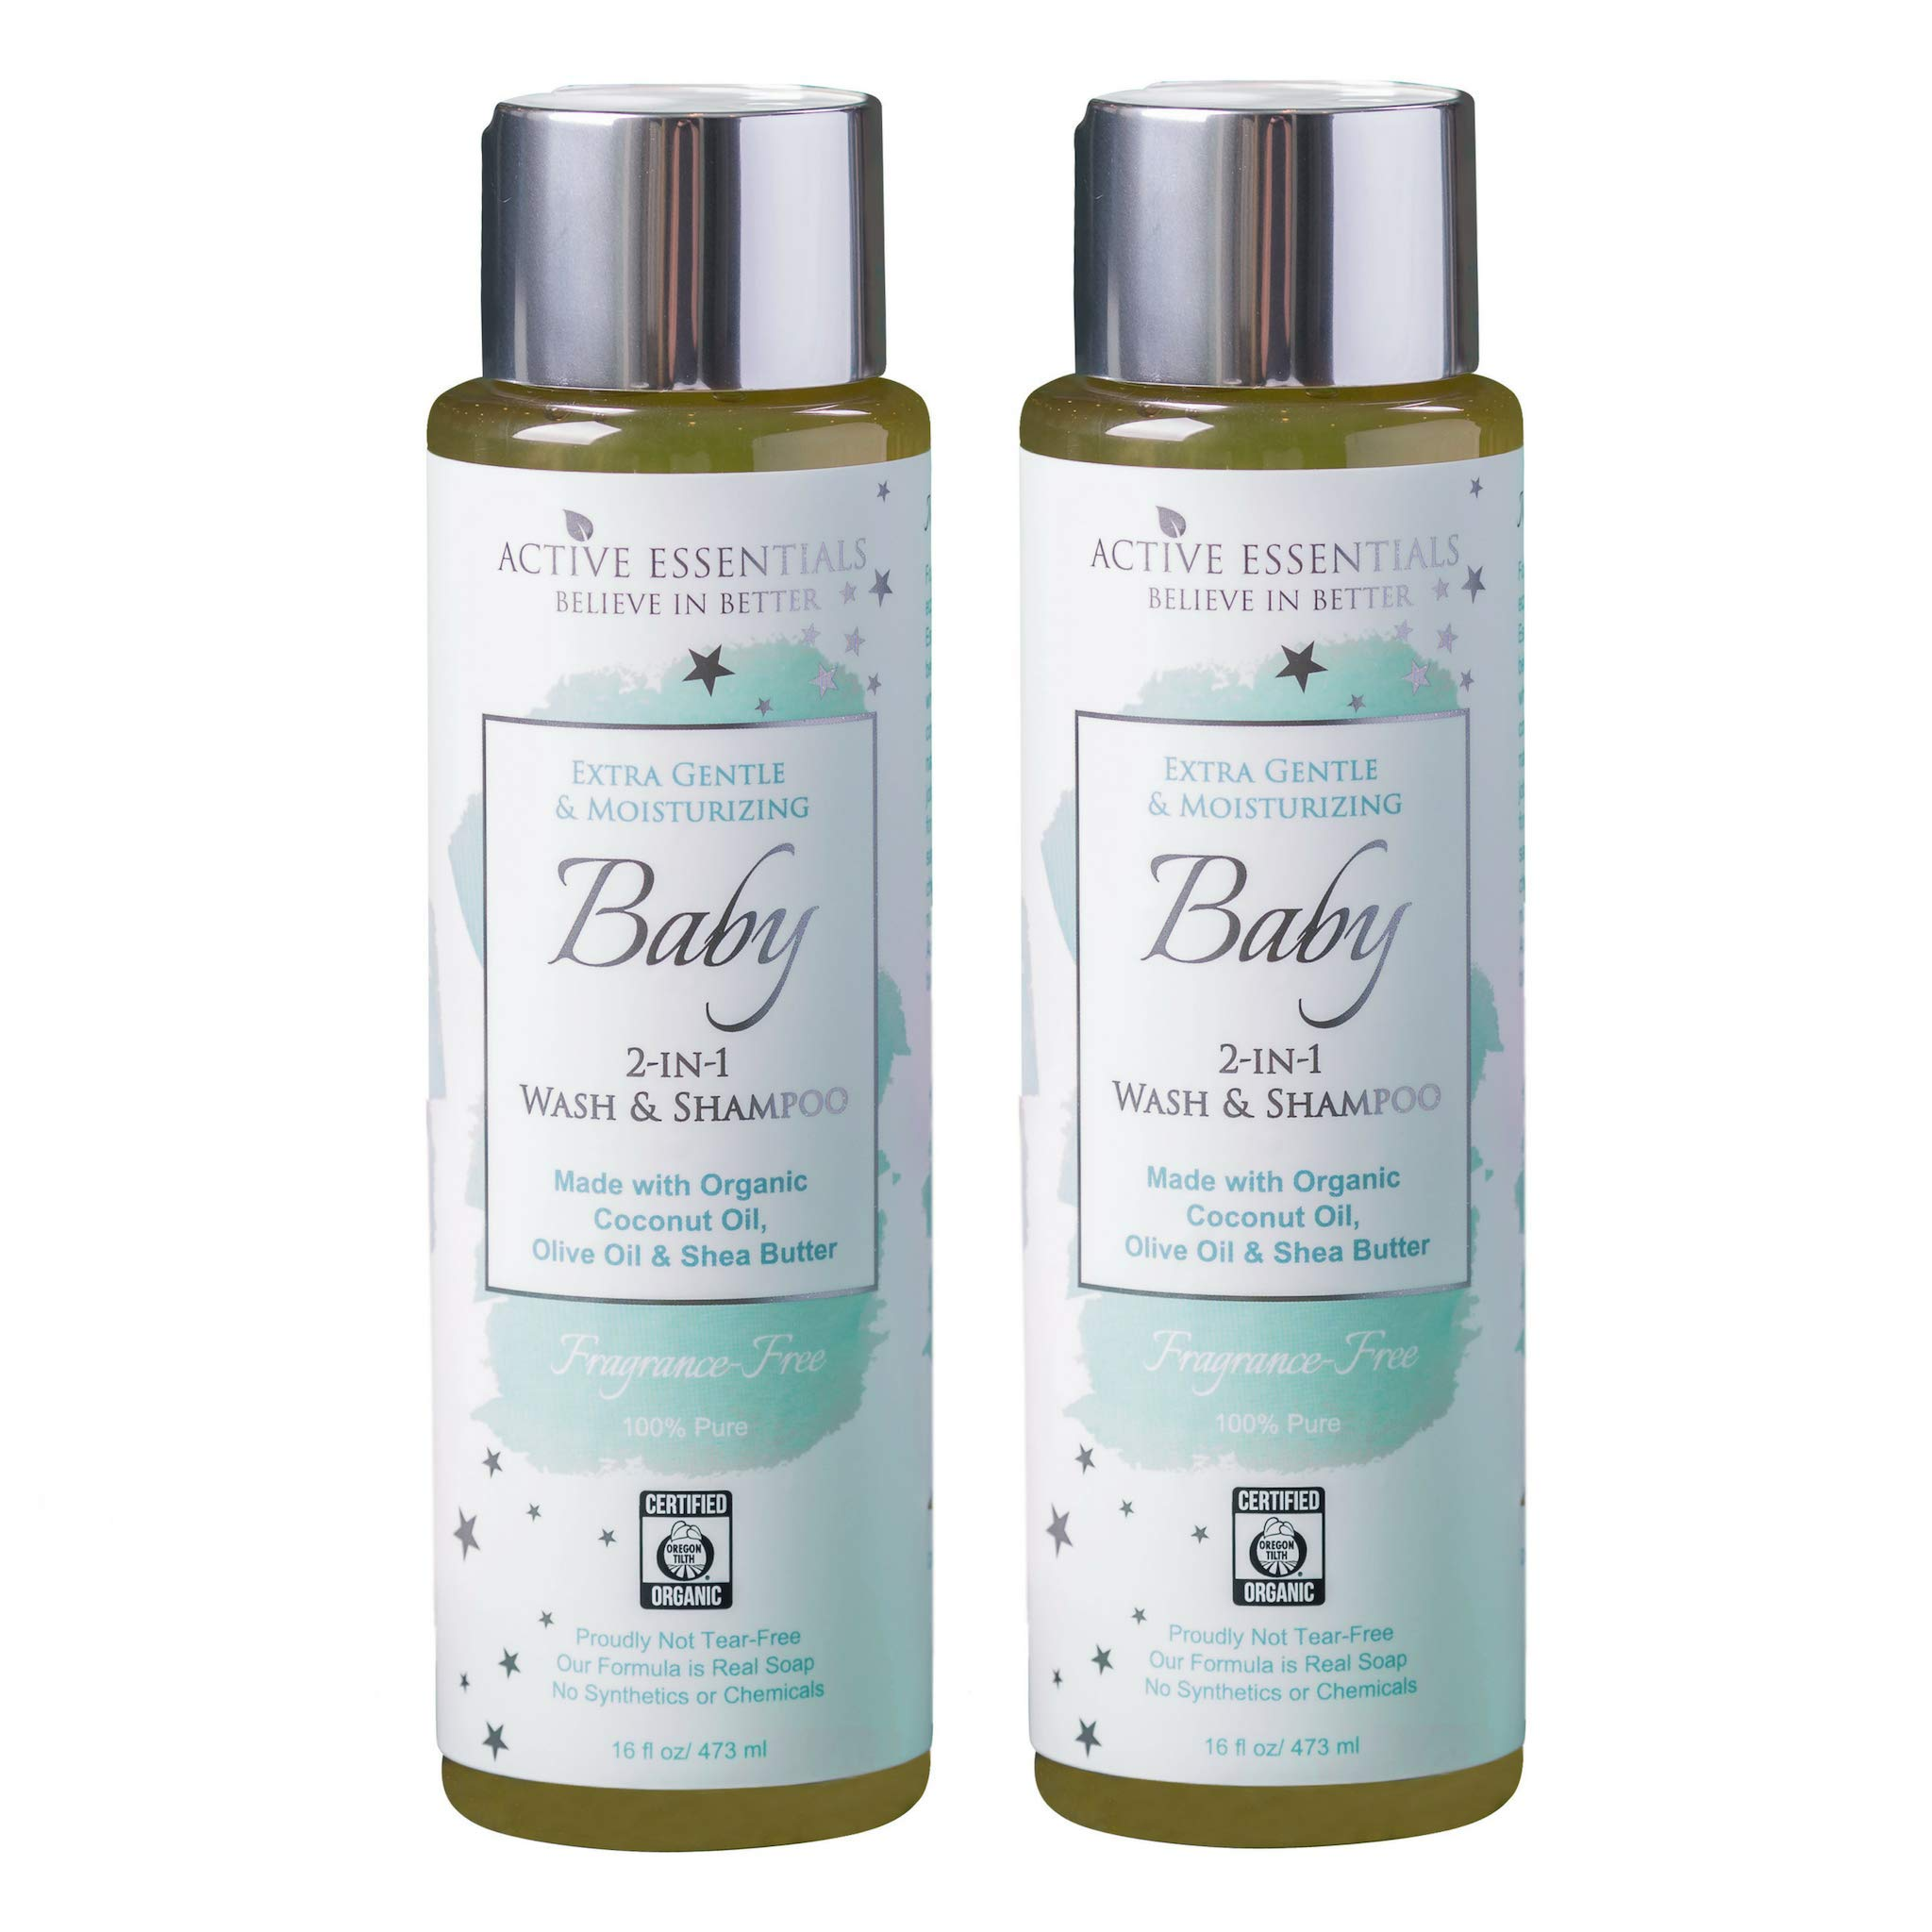 Organic Baby Wash & Shampoo with Organic Coconut Oil, Olive Oil & Shea Butter, Unscented, 100% Natural, Extra Gentle, Active Essentials 16 Ounce - 2 Pack by Active Essentials